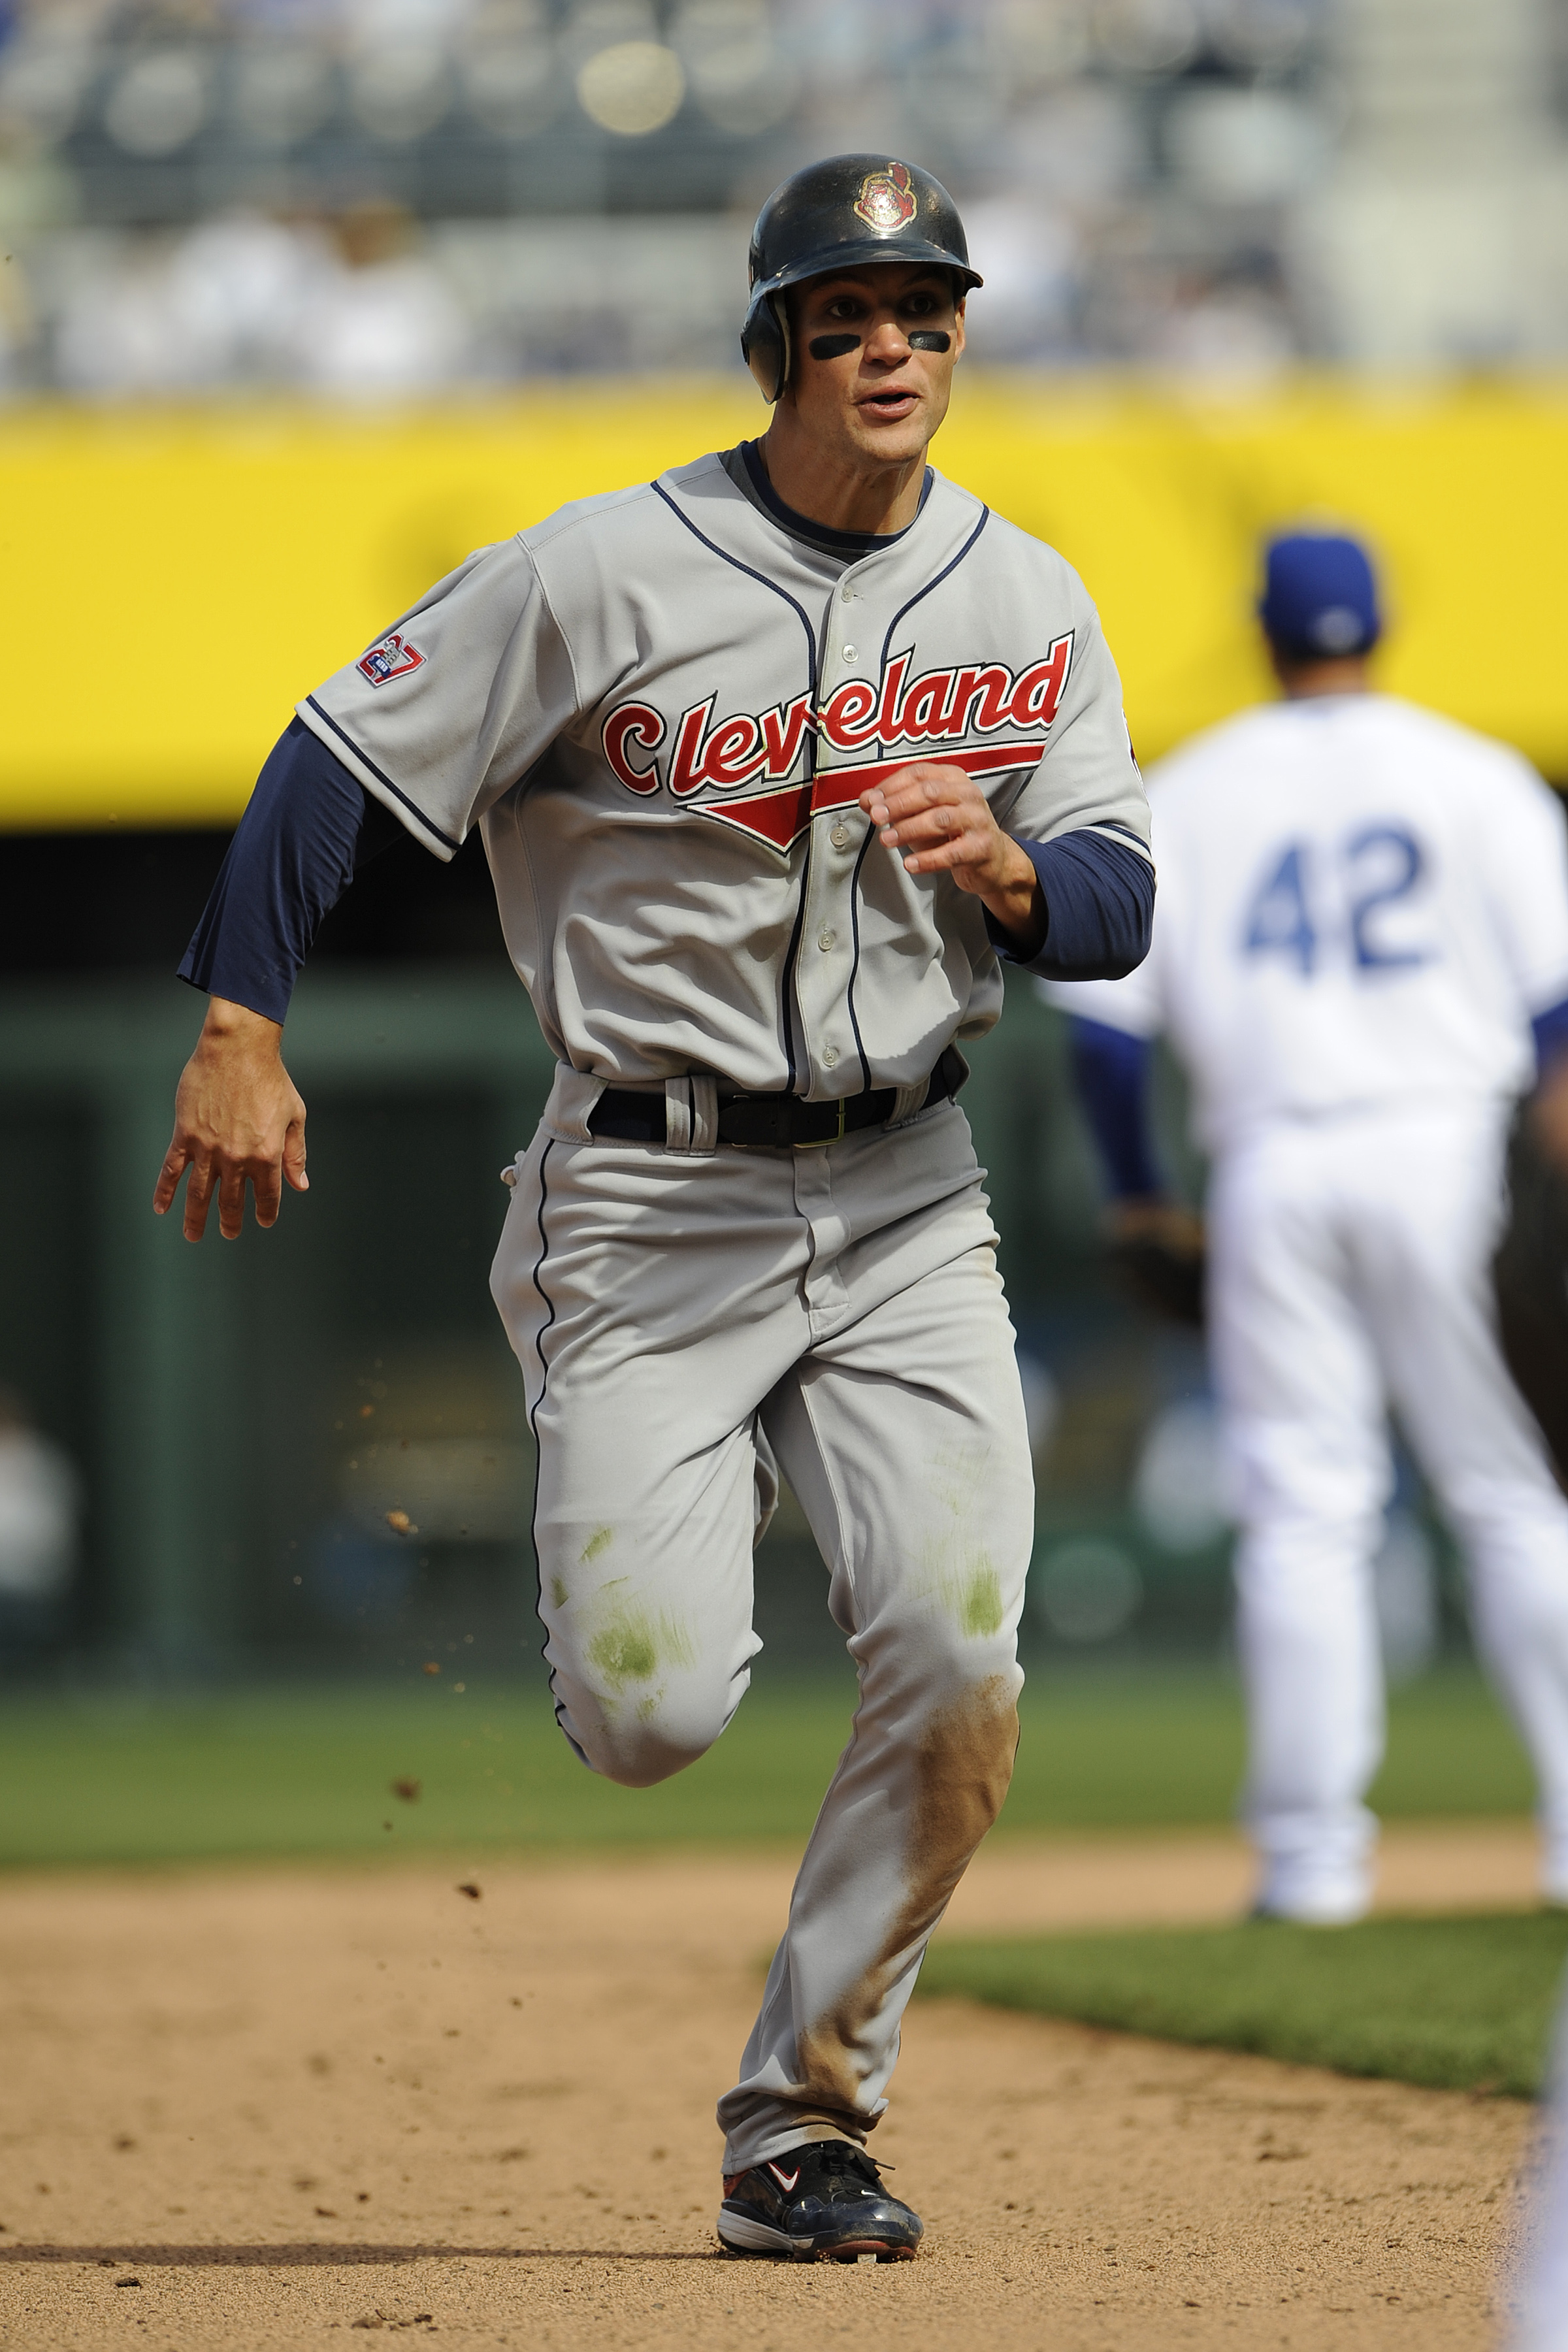 KANSAS CITY, MO - APRIL 15:  Grady Sizemore of the Cleveland Indians, wearing a #42 jersey during the Jackie Robinson Day game runs to third base against the Kansas City Royals on April 15, 2009 at Kauffman Stadium in Kansas City, Missouri.  (Photo by G.